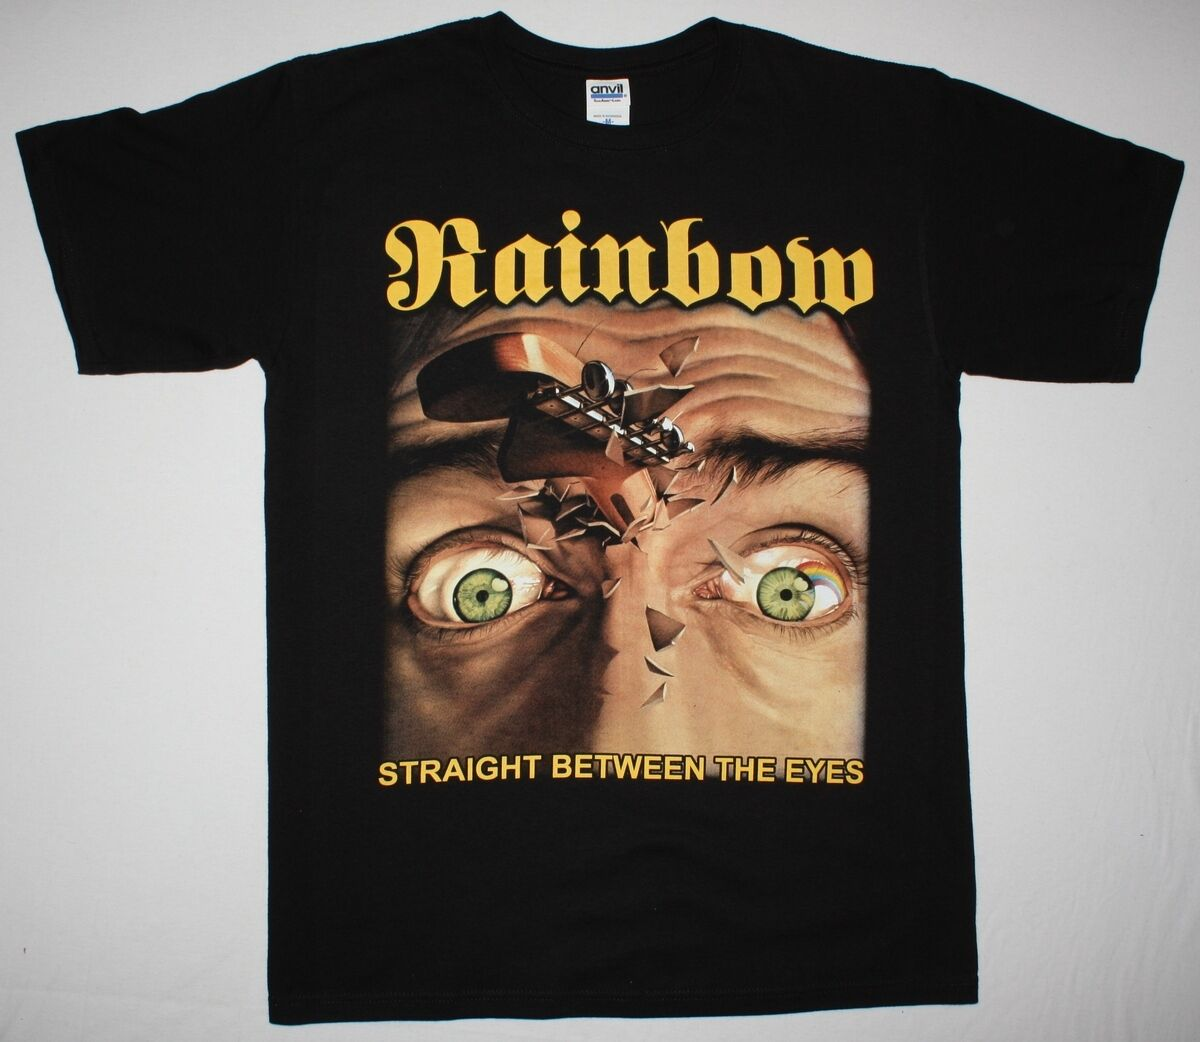 OFFICIAL LICENSED RAINBOW RISING T SHIRT ROCK BLACKMORE DIO